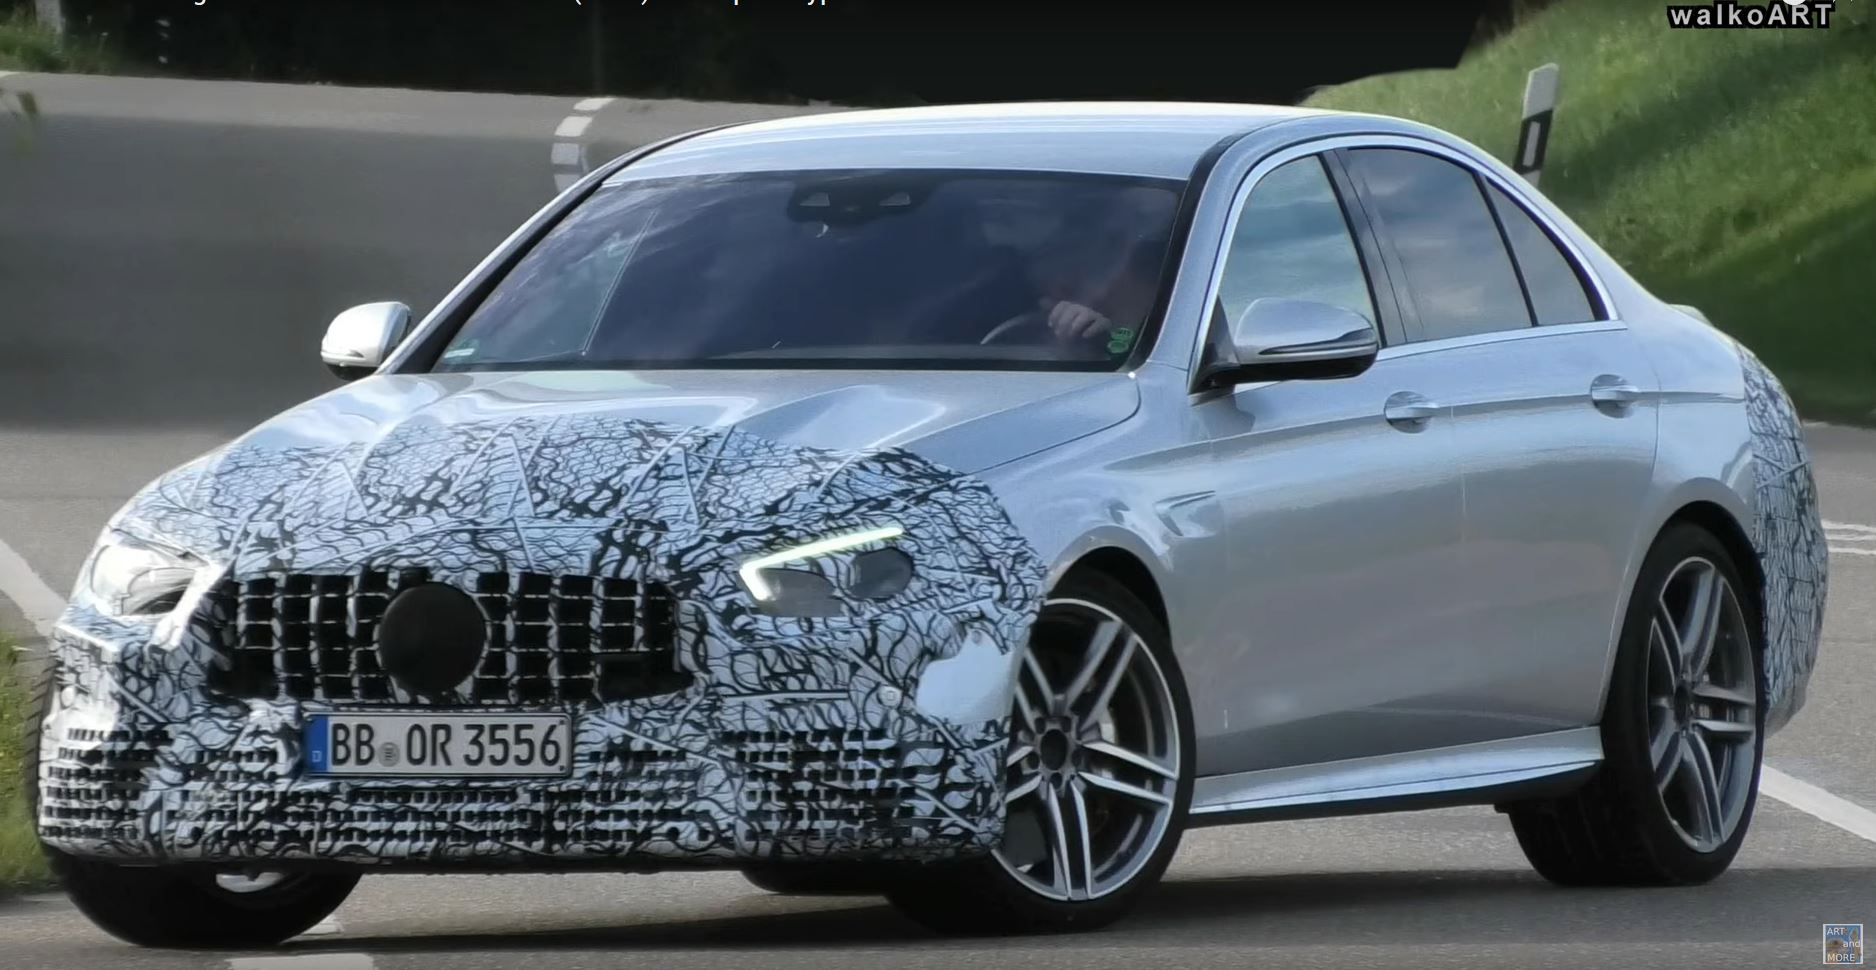 2021 Mercedes Amg E63 Sedan Facelift Spied In Germany Has New Grille Autoevolution